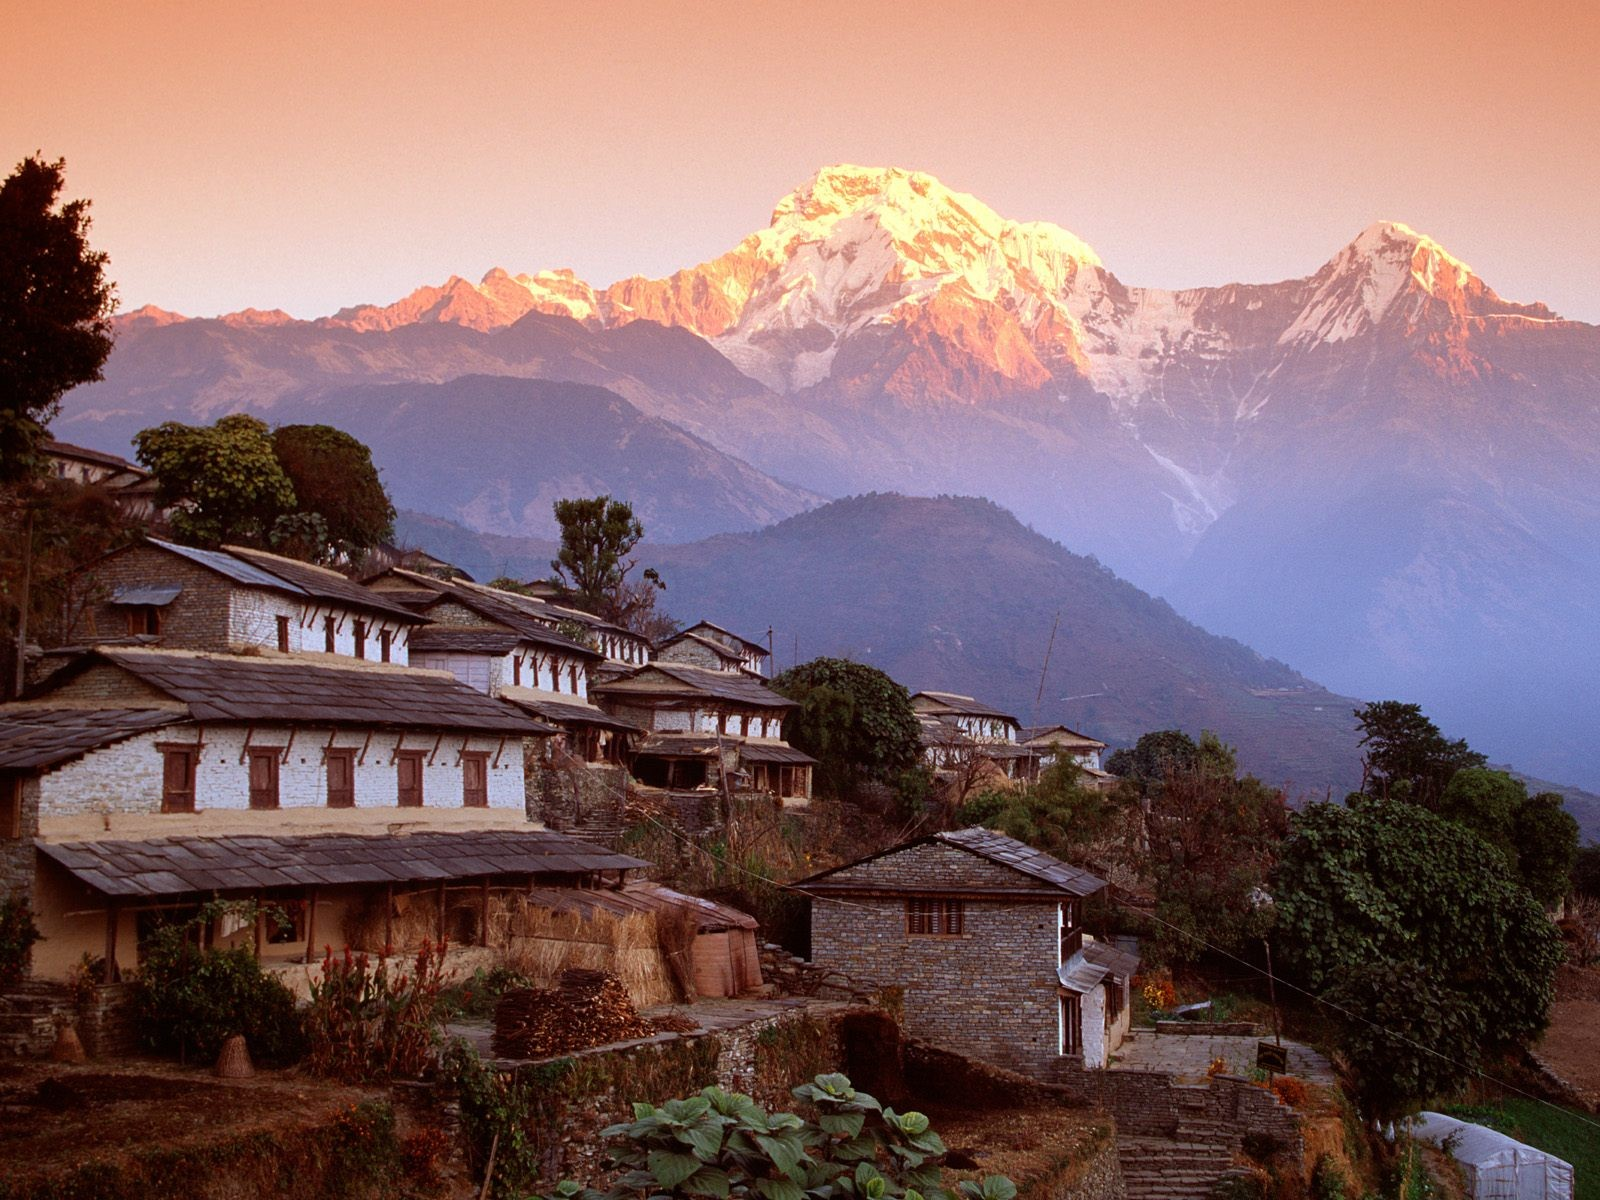 mountains_nepal_himalaya_desktop_1600x1200_hd-wallpaper-1192706